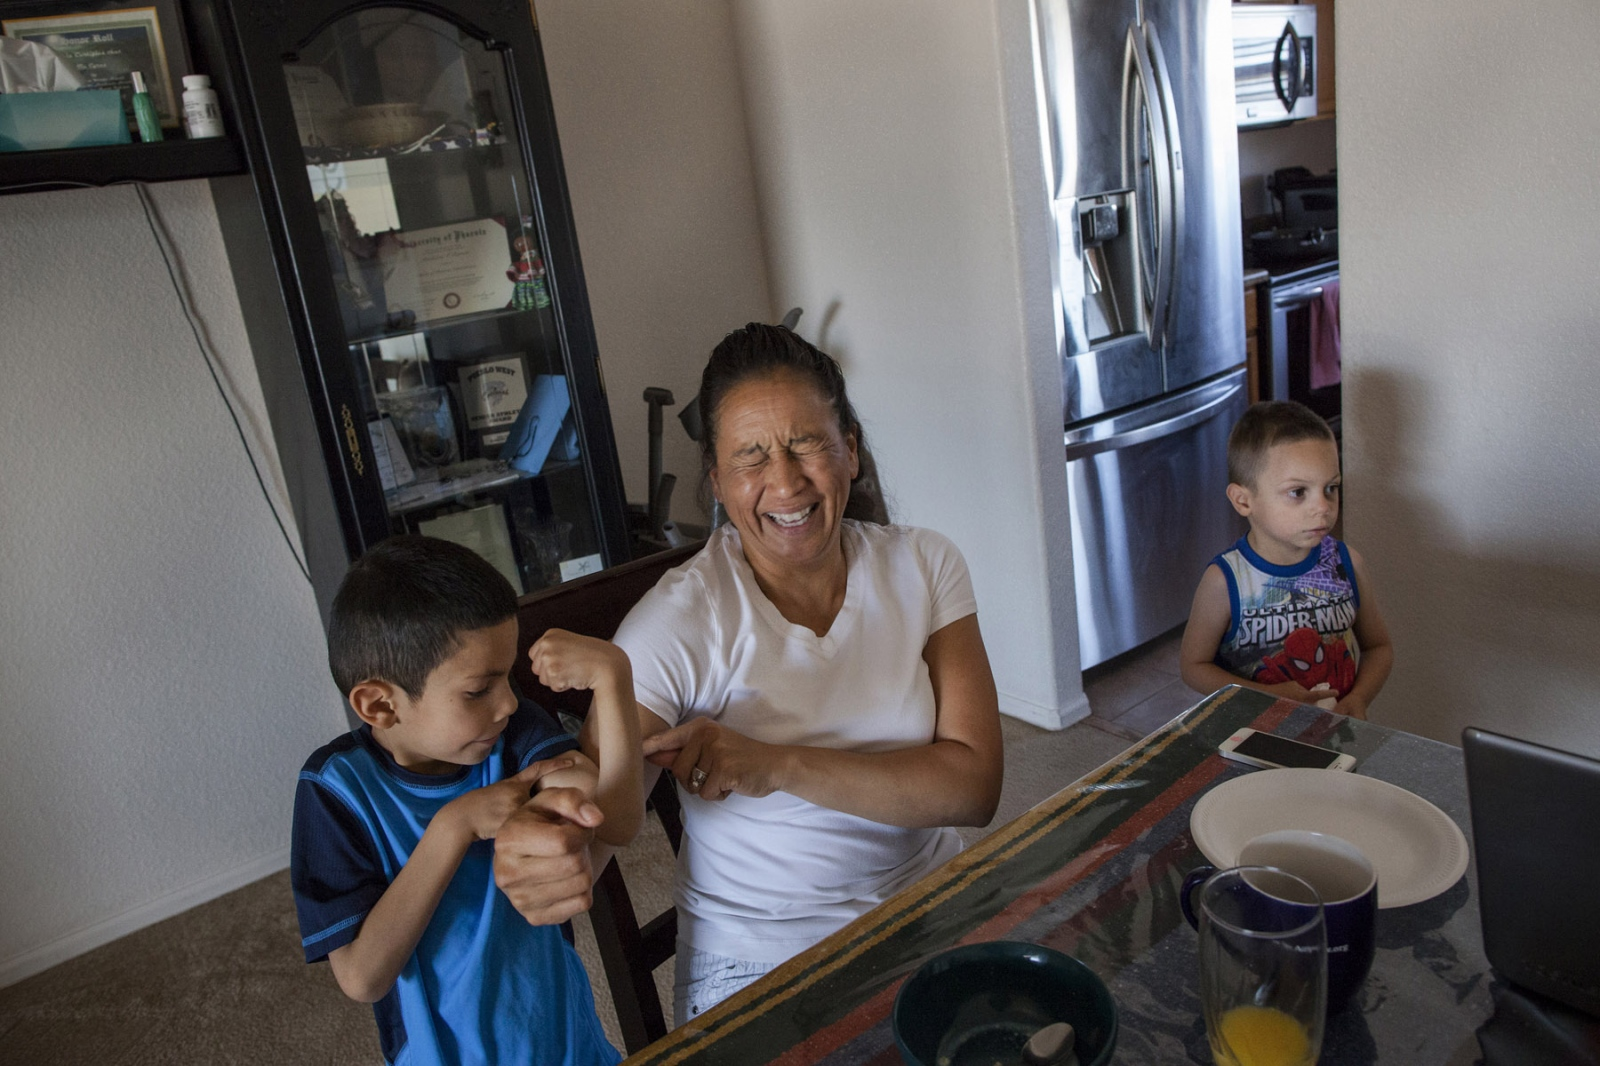 Retired Sergeant First Class Mitchelene Big Man, 49, plays with her adopted son David, 5, as Joey, 4, looks on at home in Pueblo, Colorado. 2014. SFC Big Man, originally from Crow Nation, Montana, is a veteran of Iraq and the founder of Native American Women Warriors, an organization aimed at raising awareness about women veterans and Native American women veterans in particular. She and her husband Dwayne Cyrus started the process of adoption of four children from Big Man's relative a year earlier.